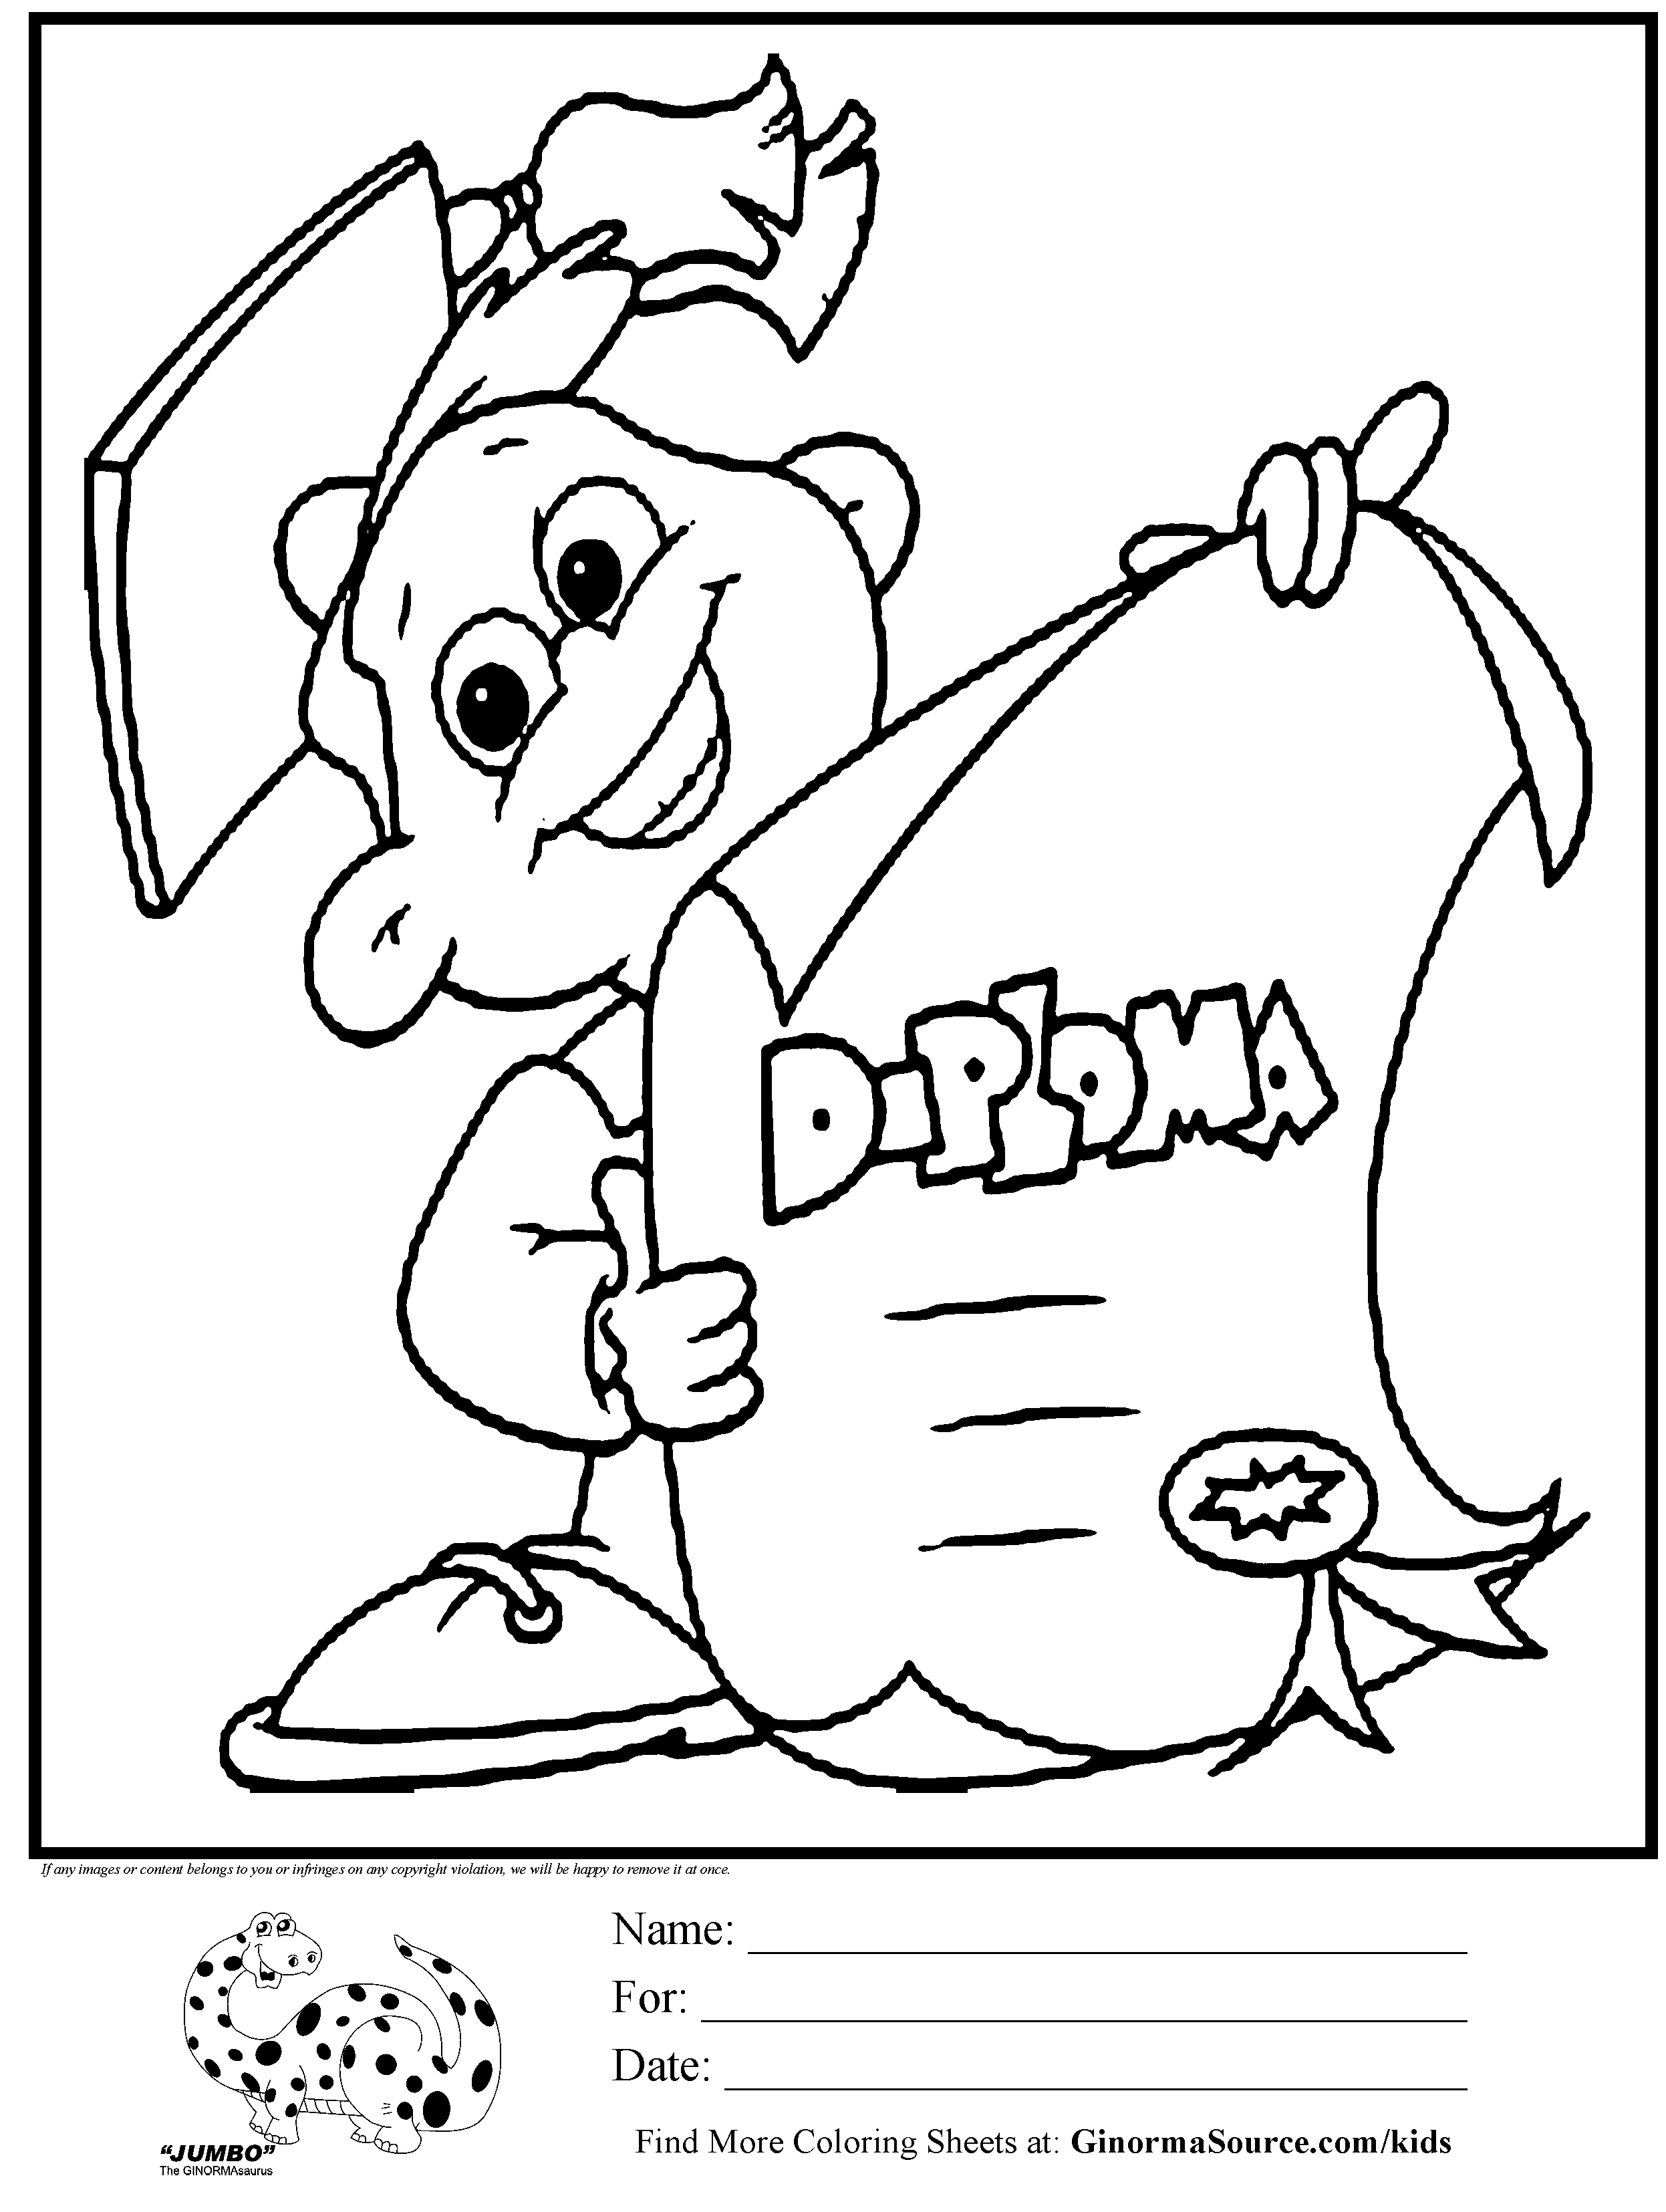 Kindergarten Graduation Coloring Pages Az Coloring Pages Coloring Page For Kindergarten